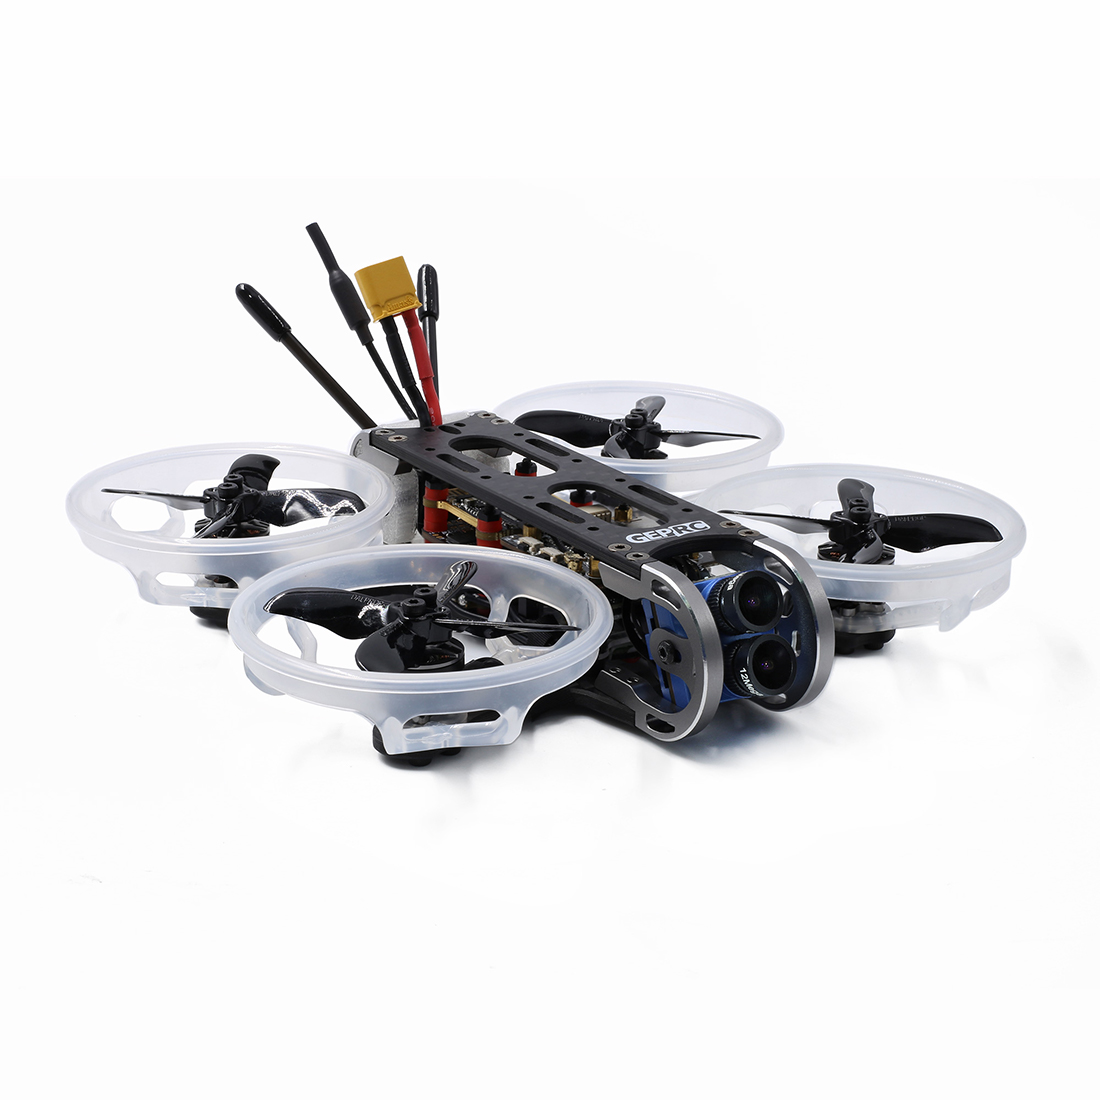 Image 5 - GEPRC CinePro 4K BNF/PNP FPV Racing Drone 4S Compatiable with F722/F405 Flight Controller 115mm 5.8g 48CH 500mW VTX-in Parts & Accessories from Toys & Hobbies